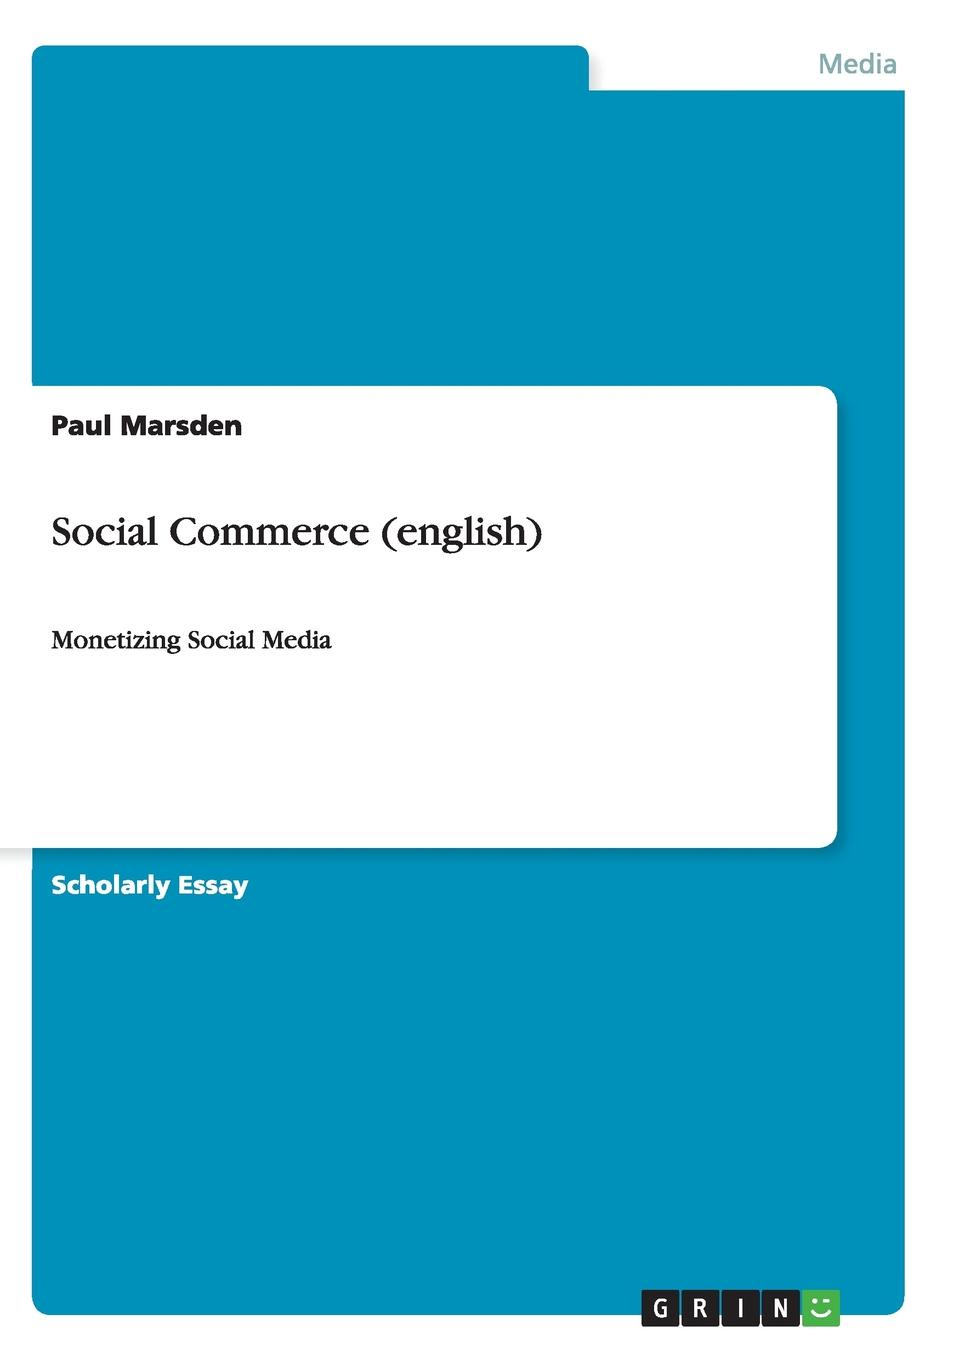 Paul Marsden Social Commerce (english) marsha collier social media commerce for dummies